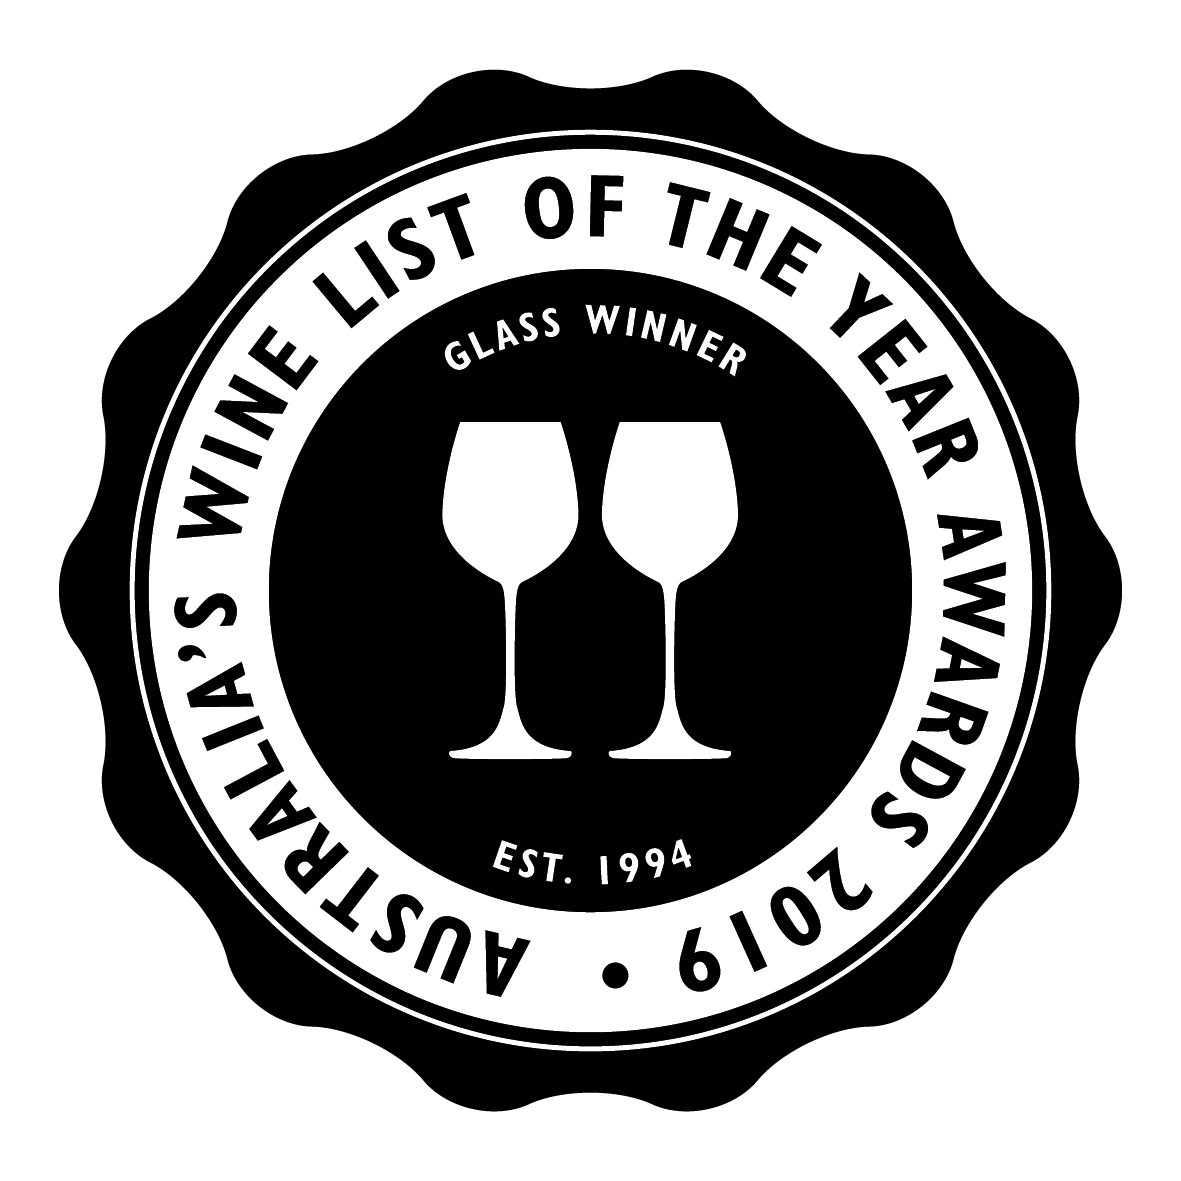 2019 2 GLASS RATING SEAL V2.png